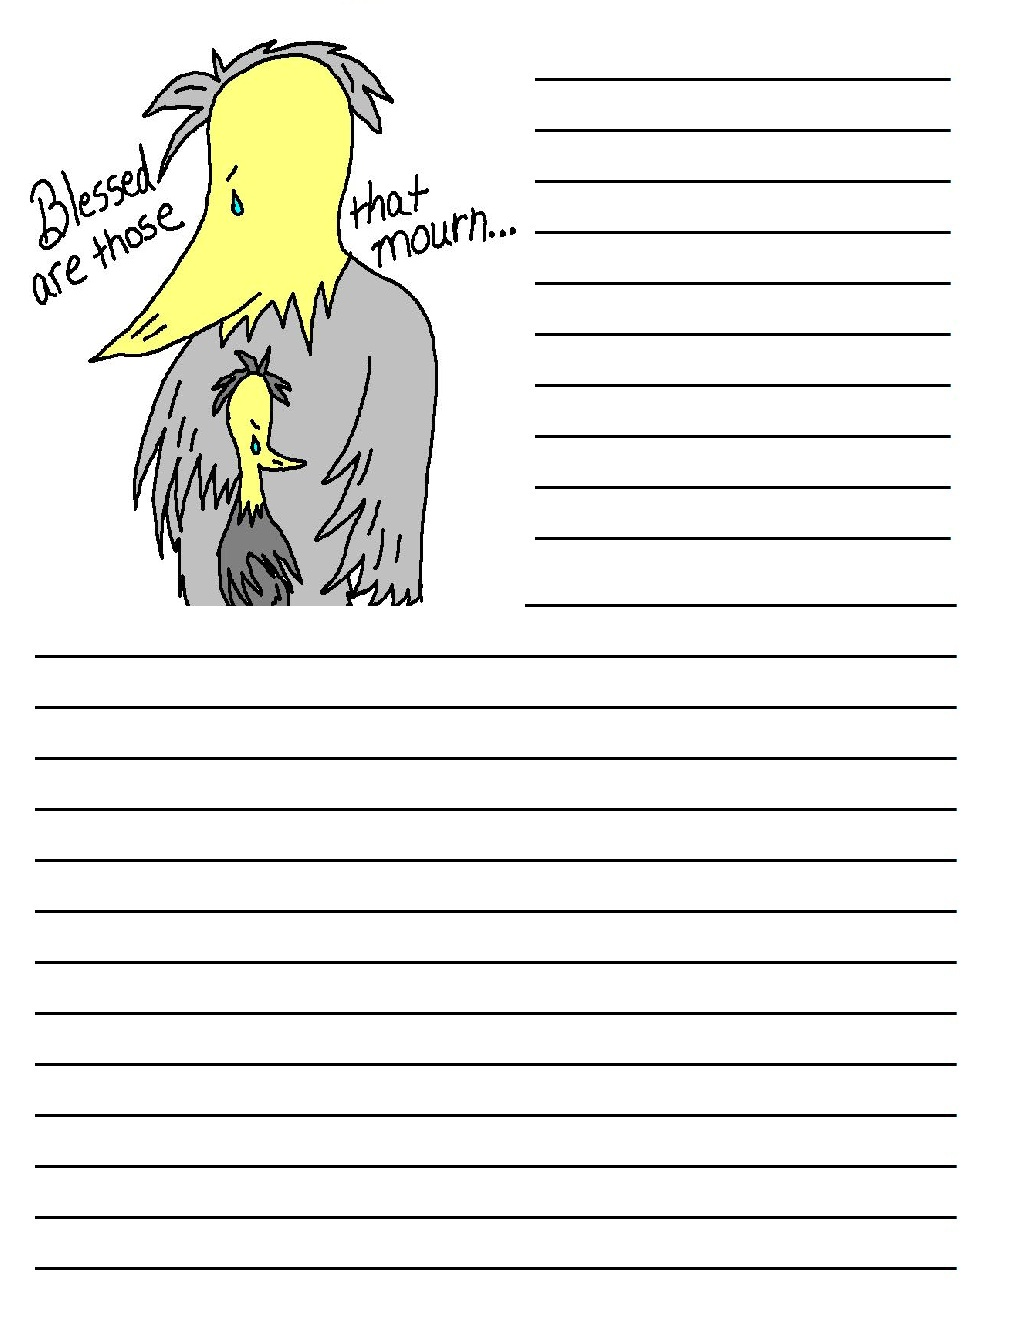 Doc474609 Free Lined Handwriting Paper Blank Lined Paper – Free Handwriting Paper Template